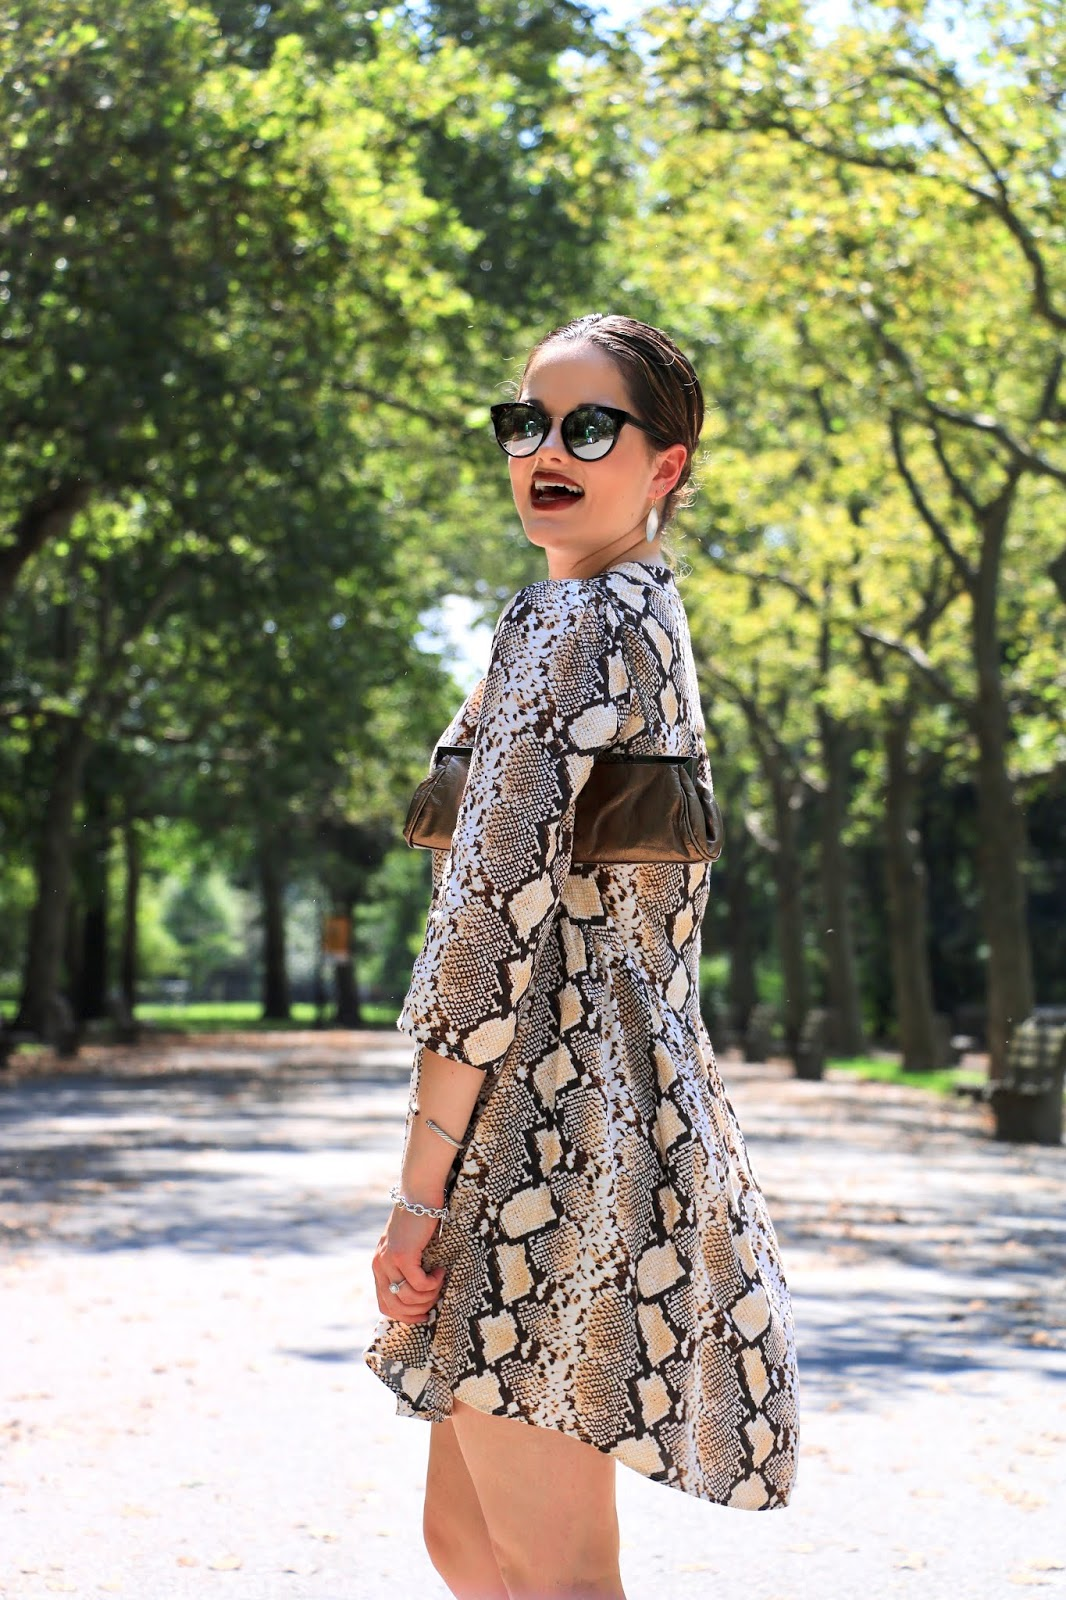 Nyc fashion blogger Kathleen Harper wearing an animal print dress for fall 2019.